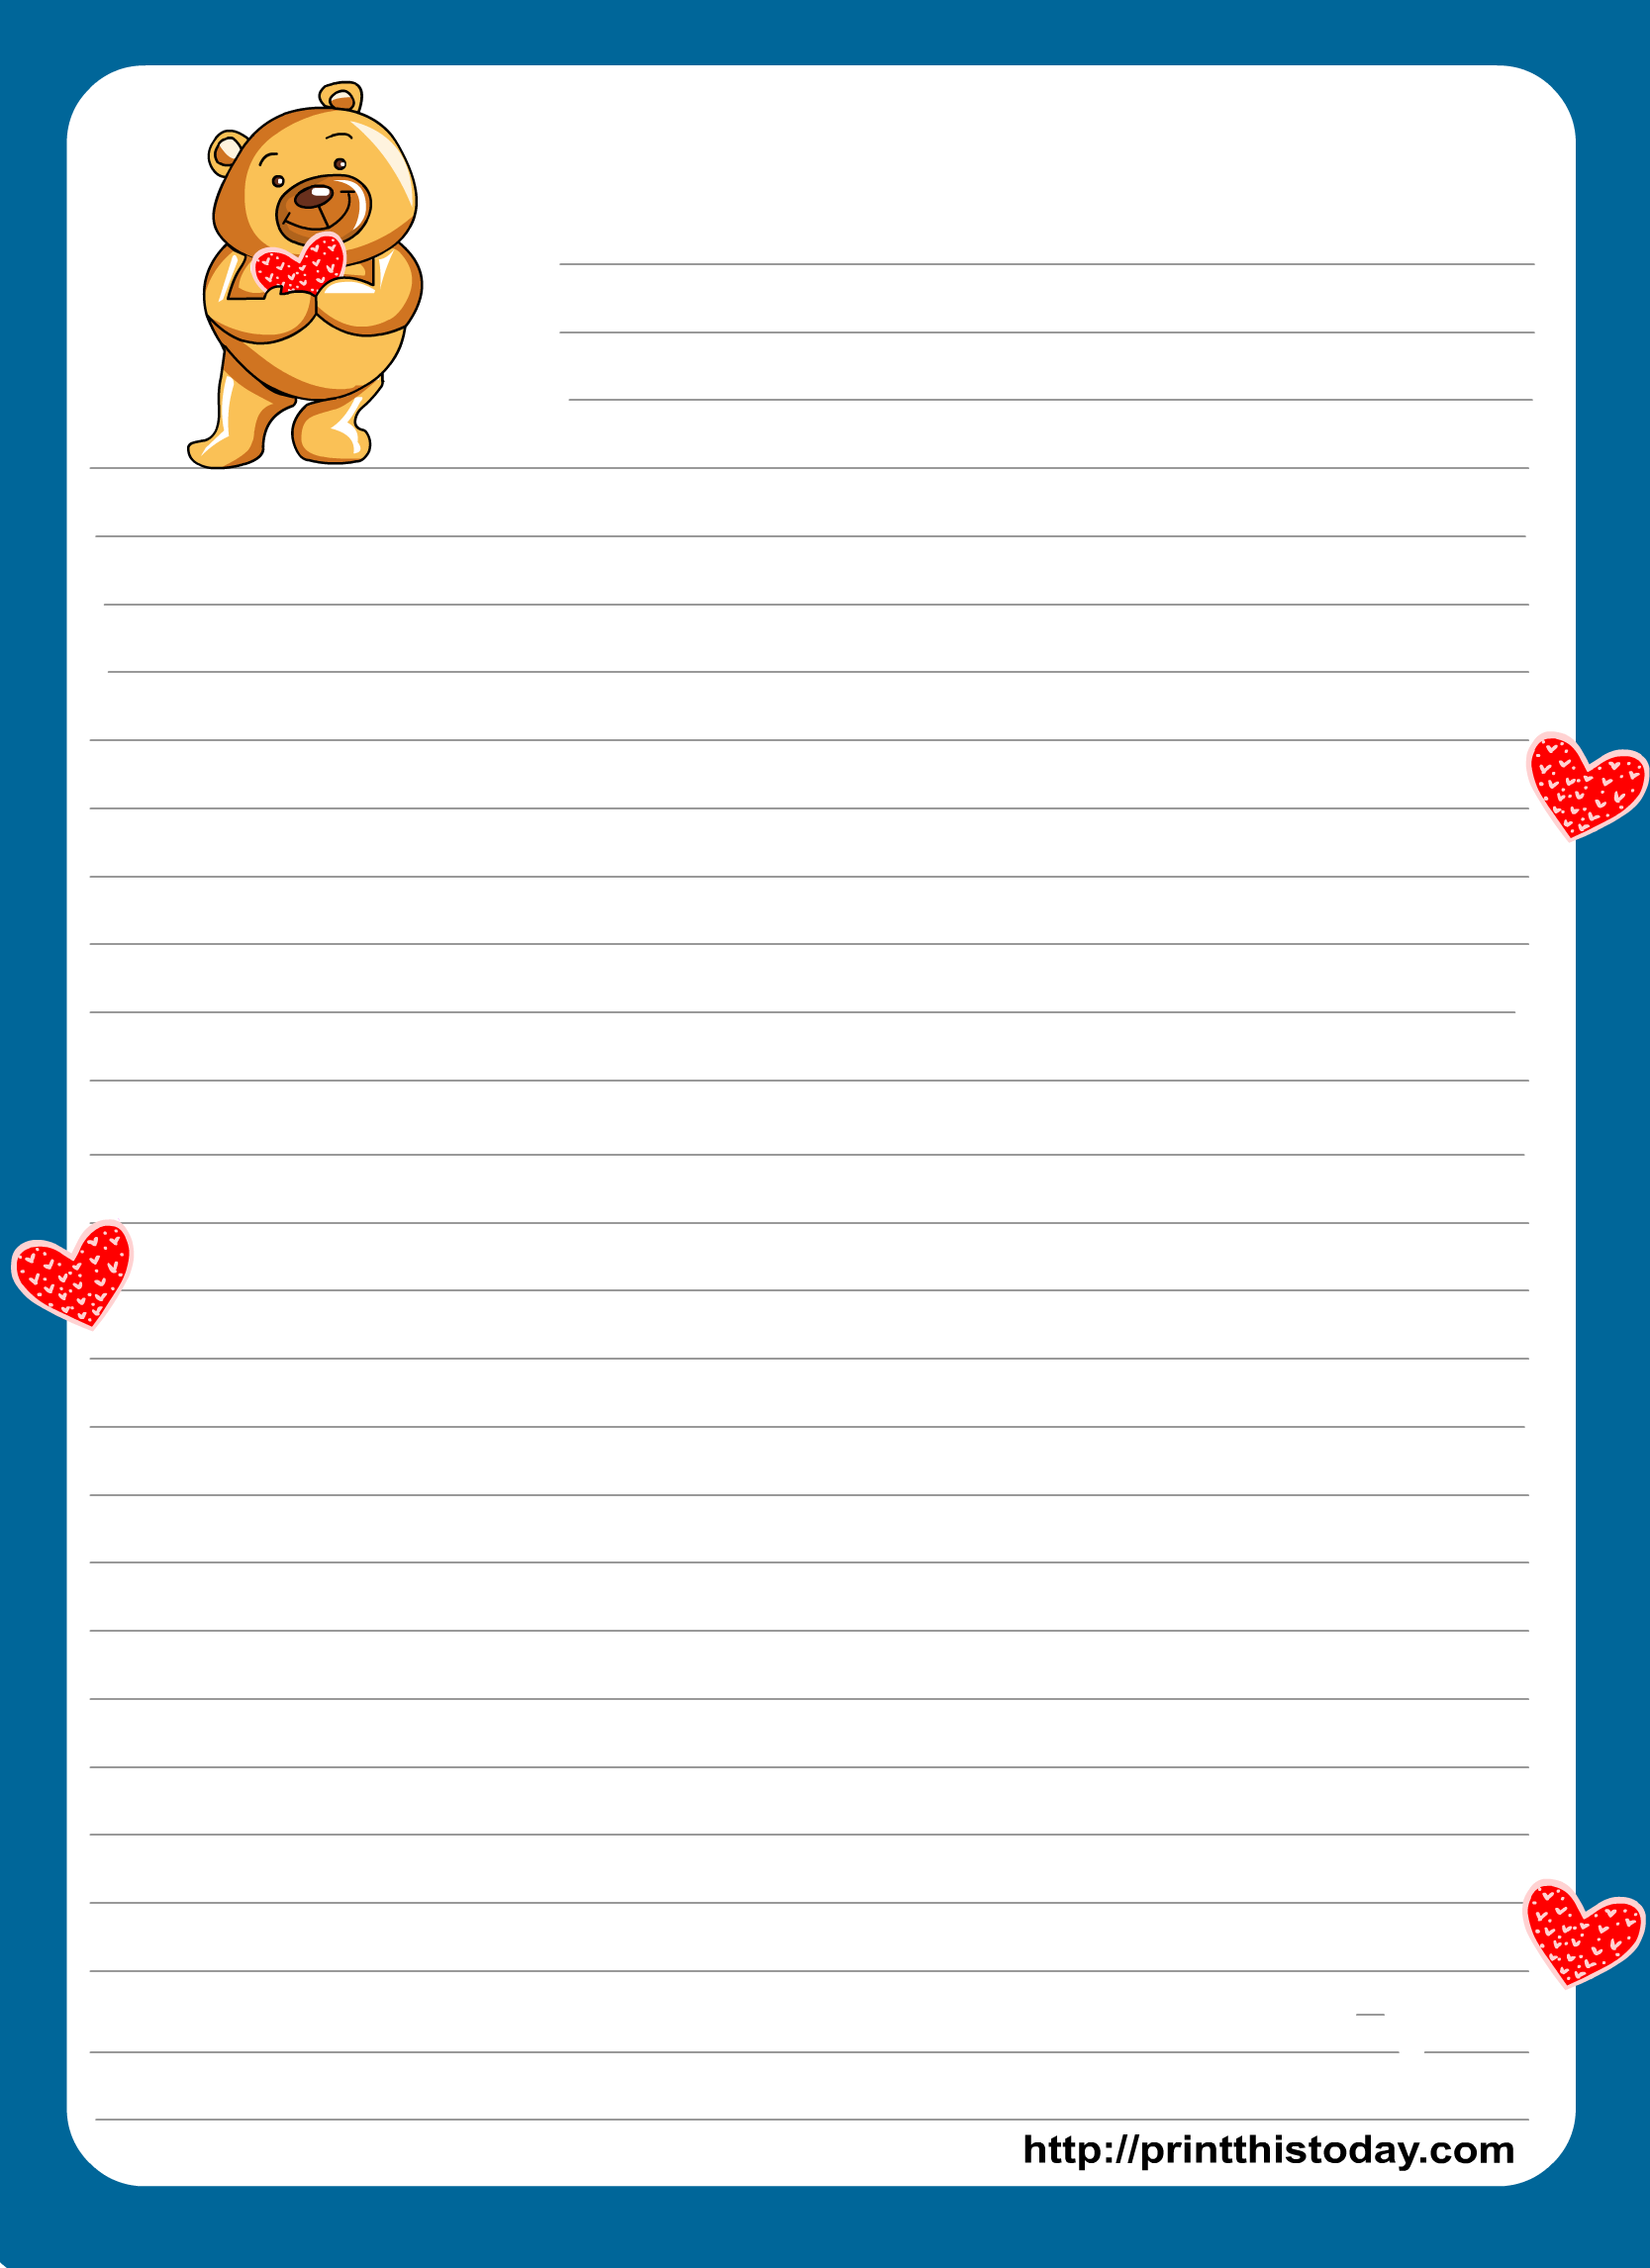 teddy bear writing paper for kids teddy bear writing paper for kids